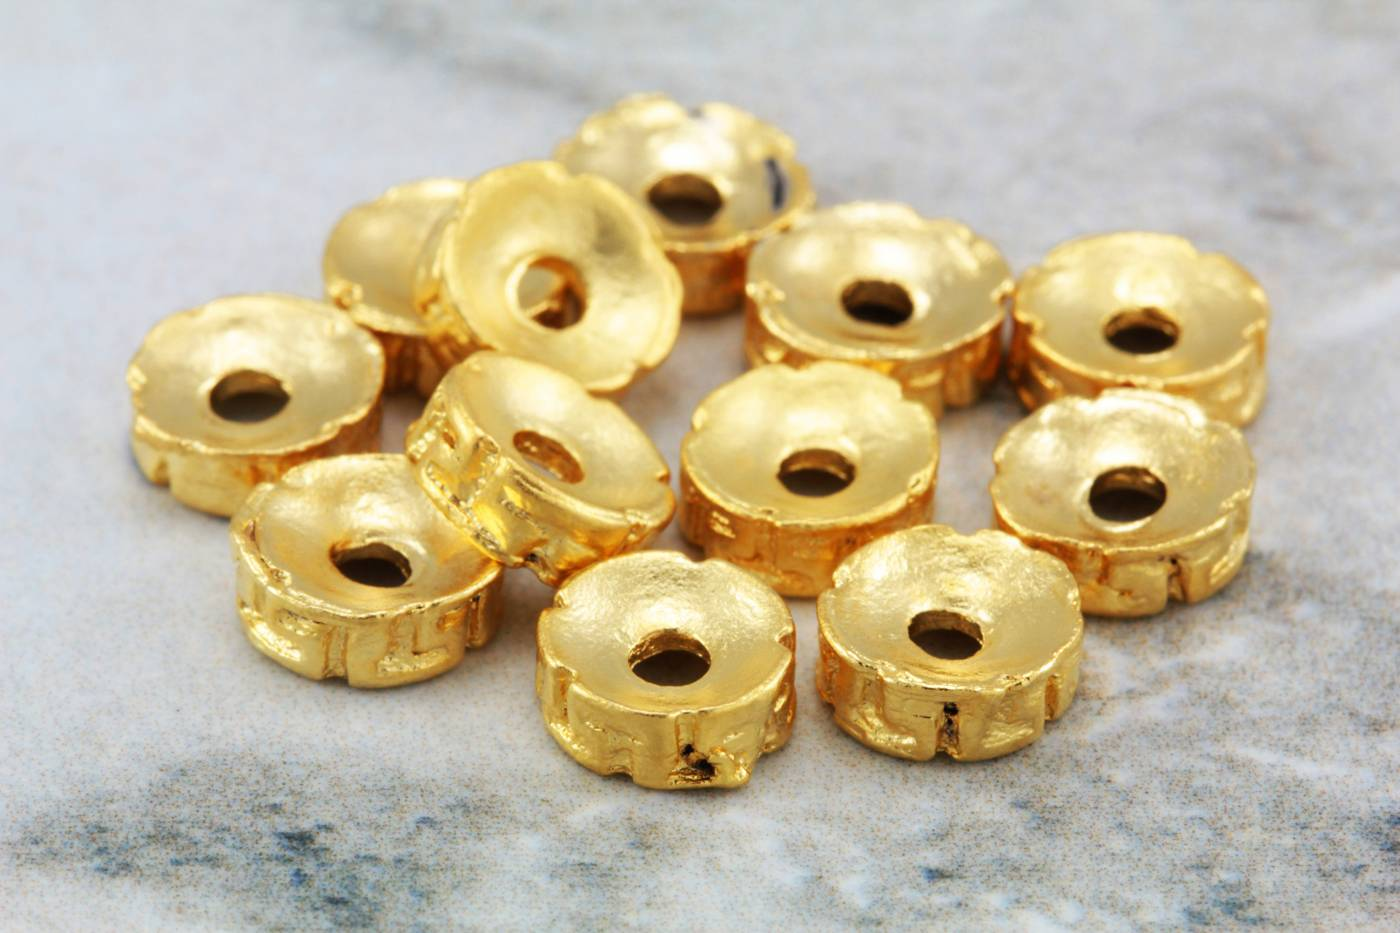 8mm-gold-rondelle-spacer-bead-findings.jpg